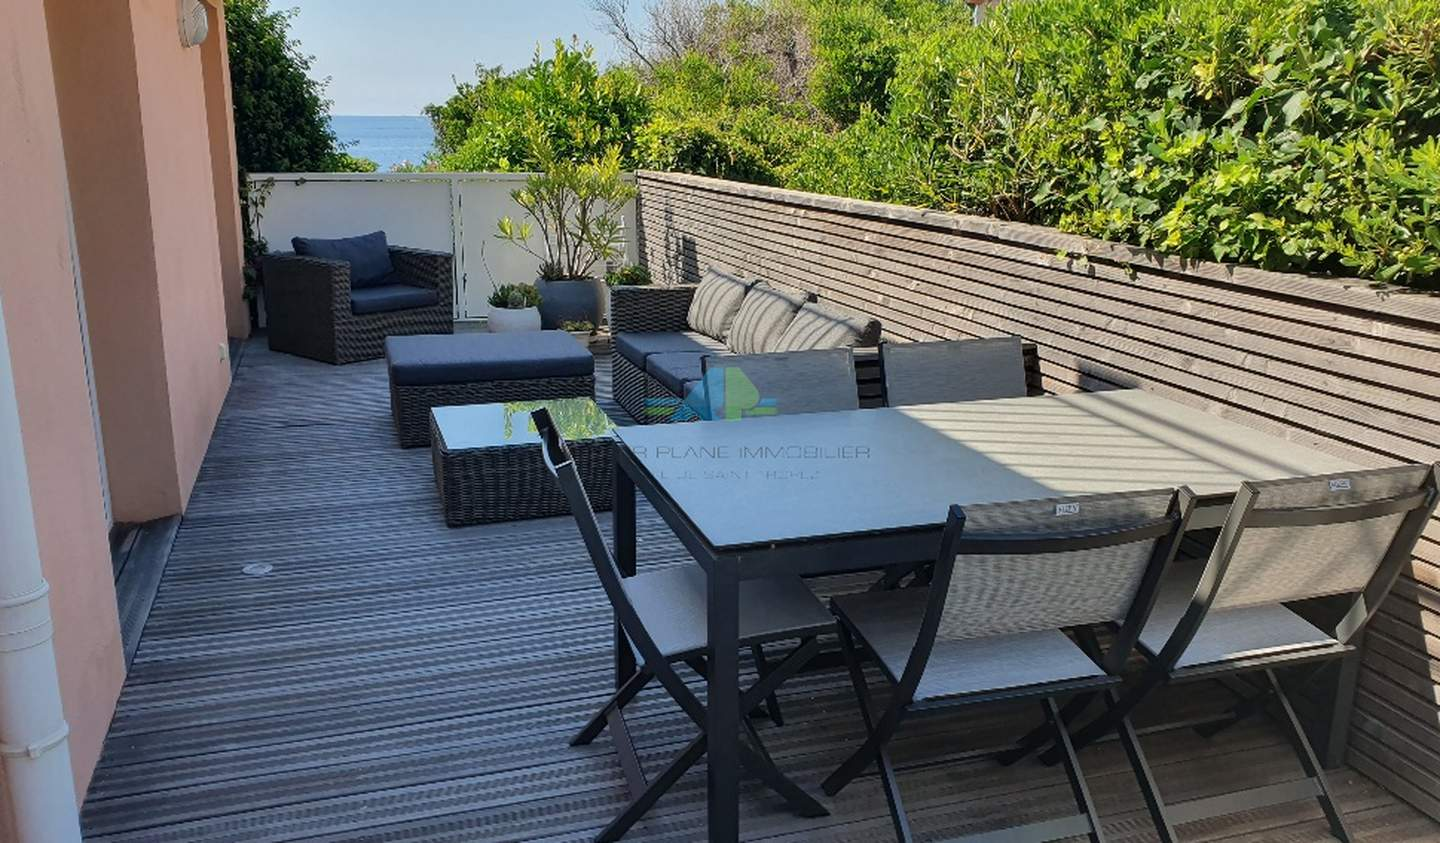 Apartment with terrace Les issambres